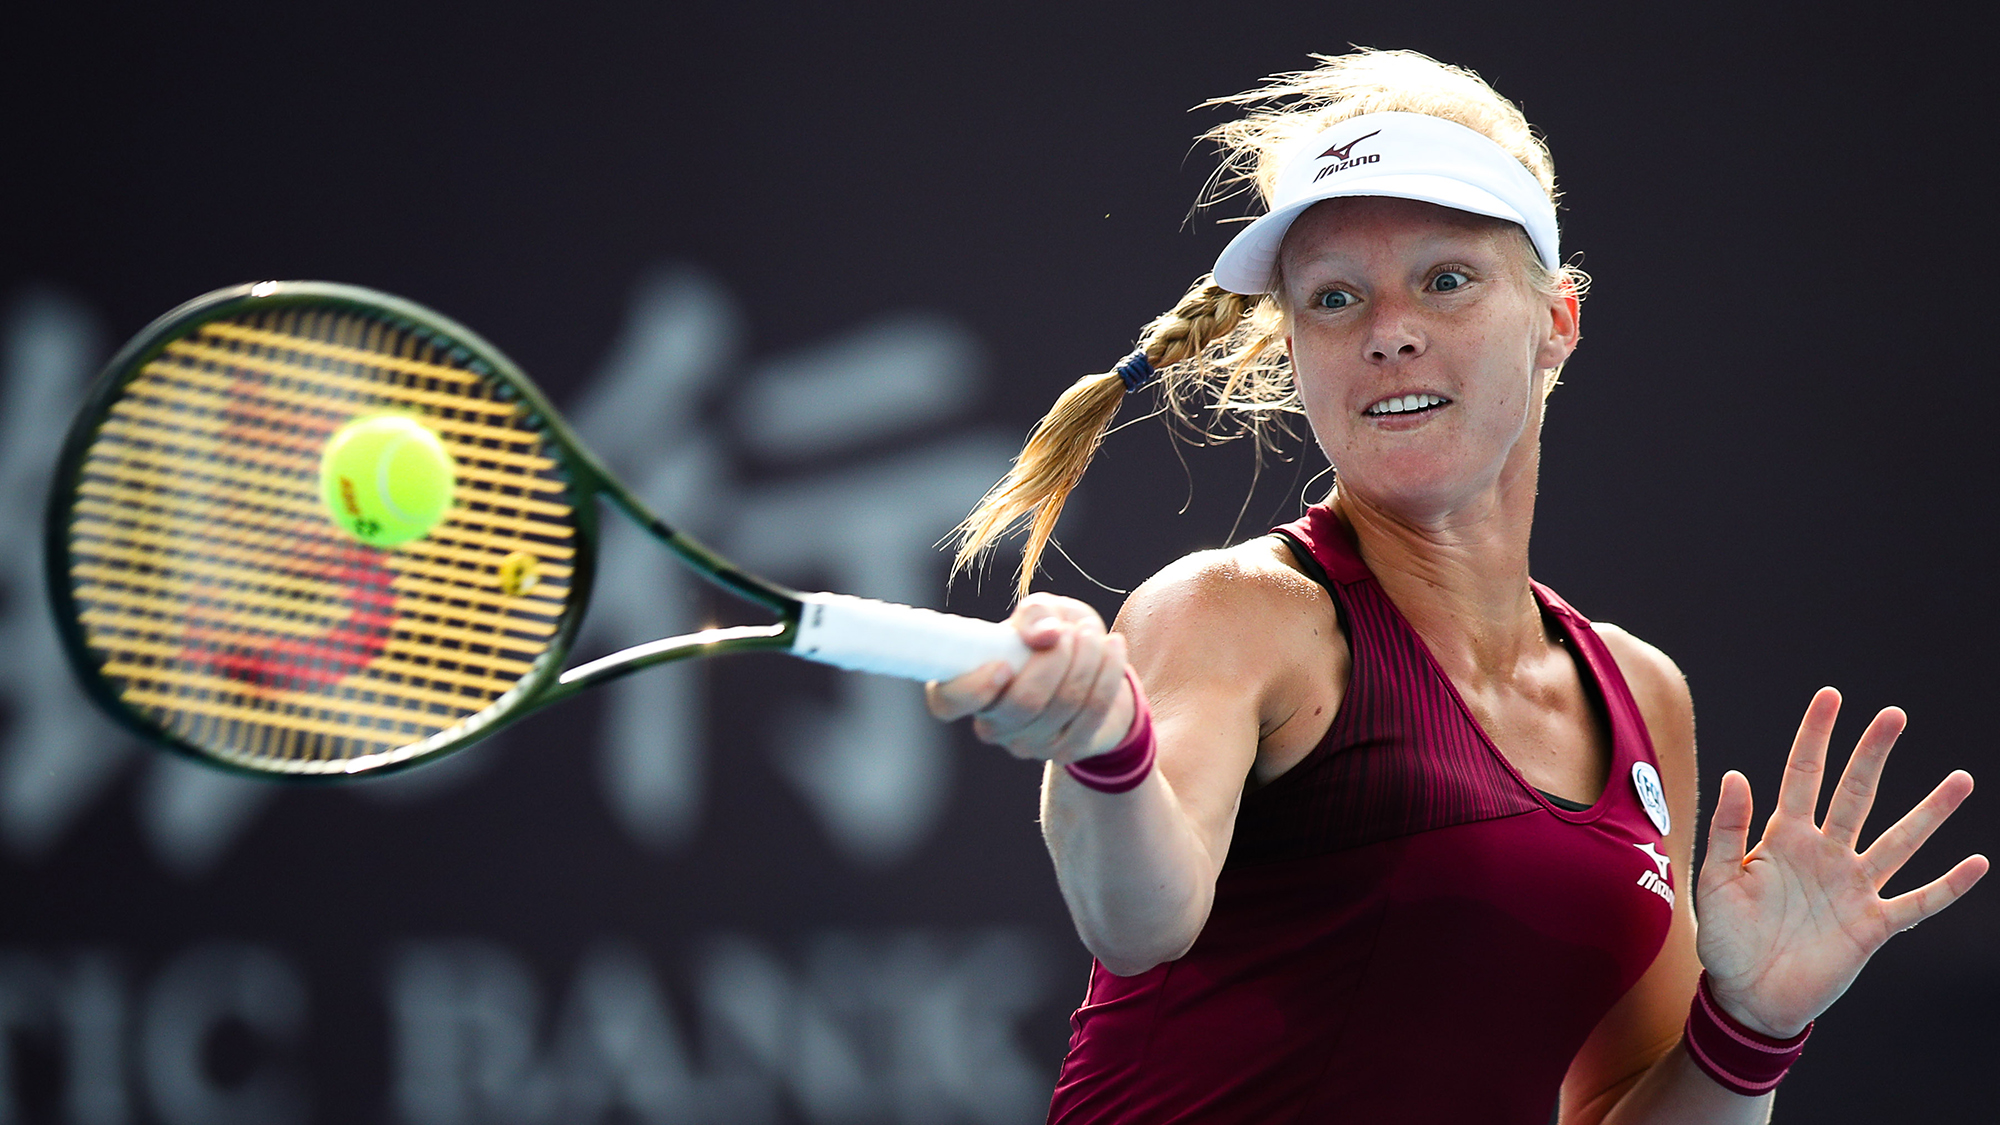 Kiki Bertens comeback player of the year wta awards